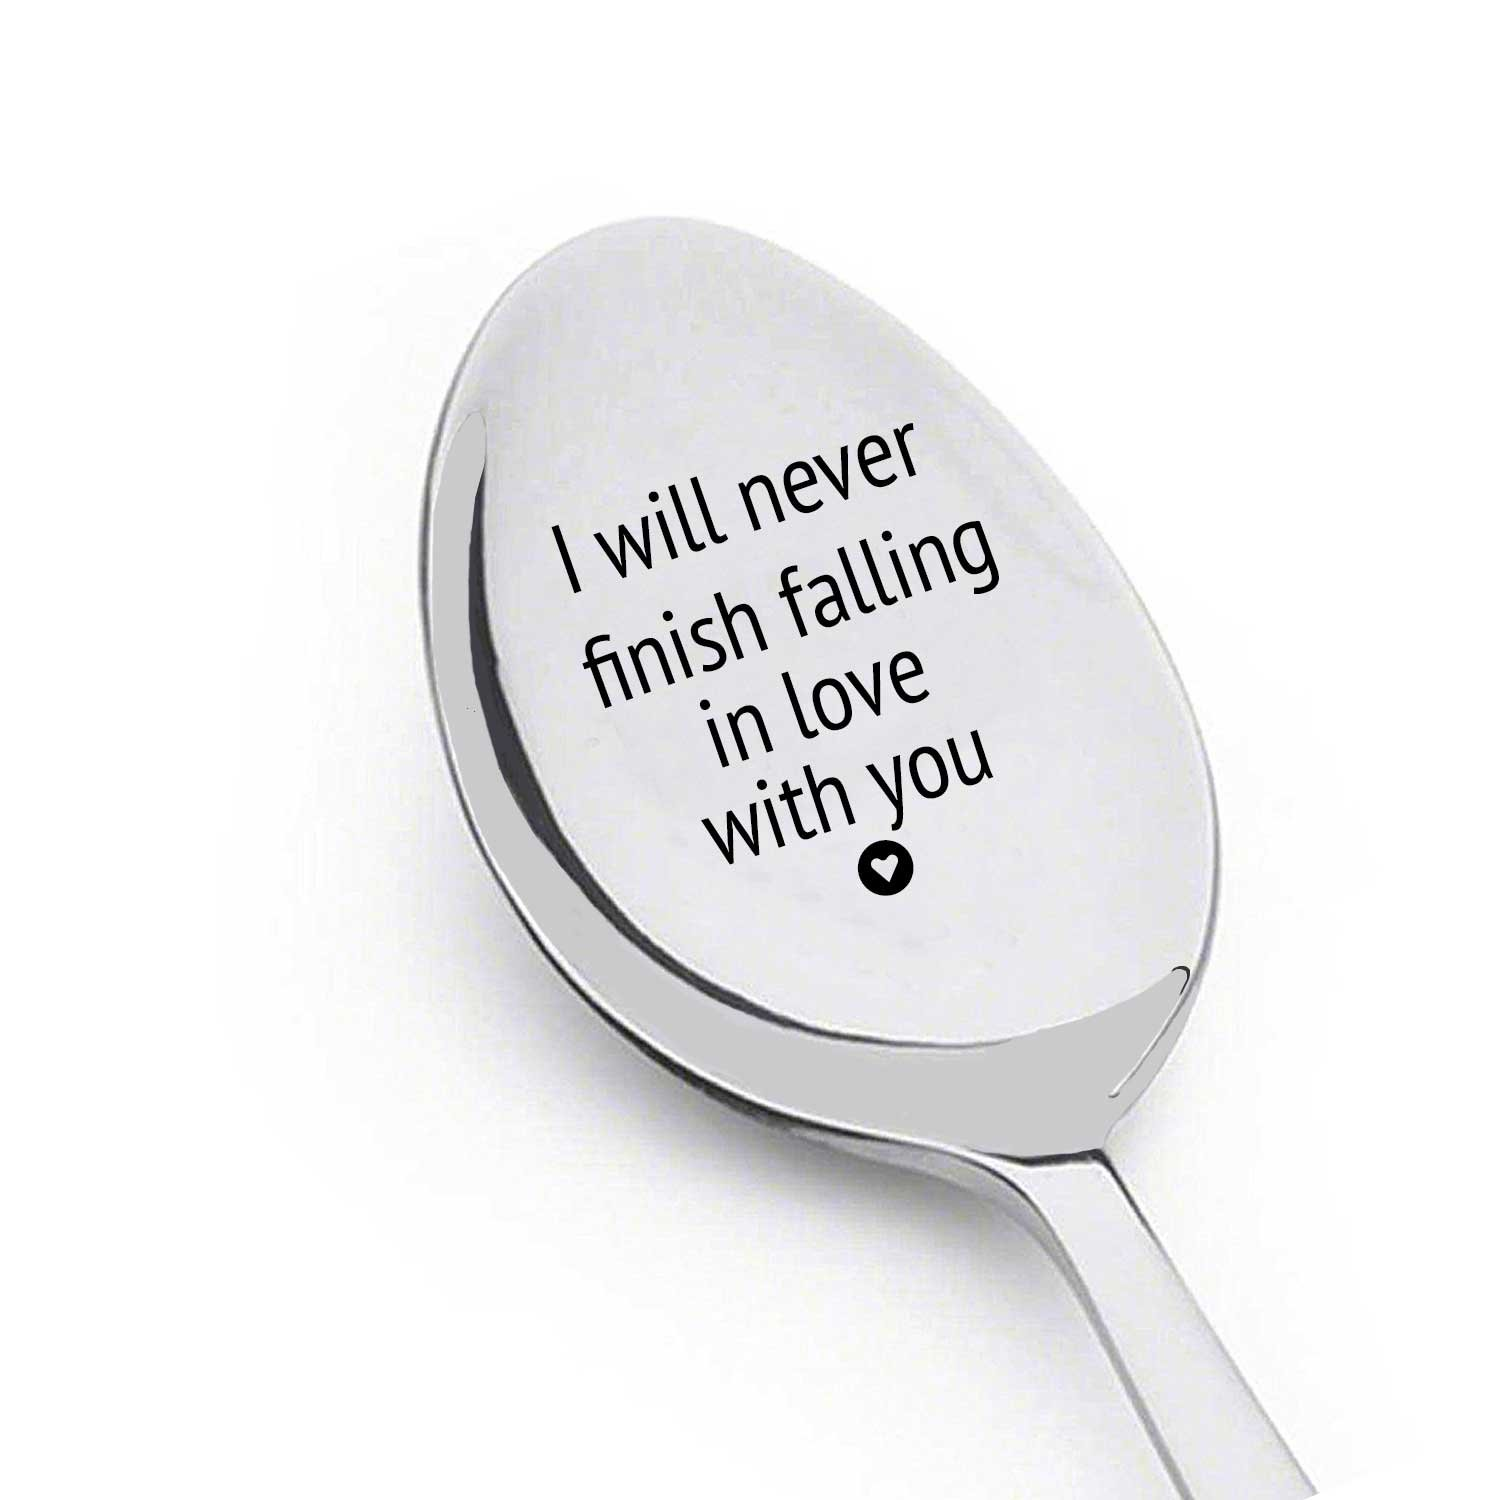 Coffee Spoon Or Tea Spoon-Kitchen Gifts - Engraved Spoon - Couples Gifts – Wedding Gifts – Engagement Gifts – Anniversary Gifts - Personalized Gift - I will never finish falling in love with you